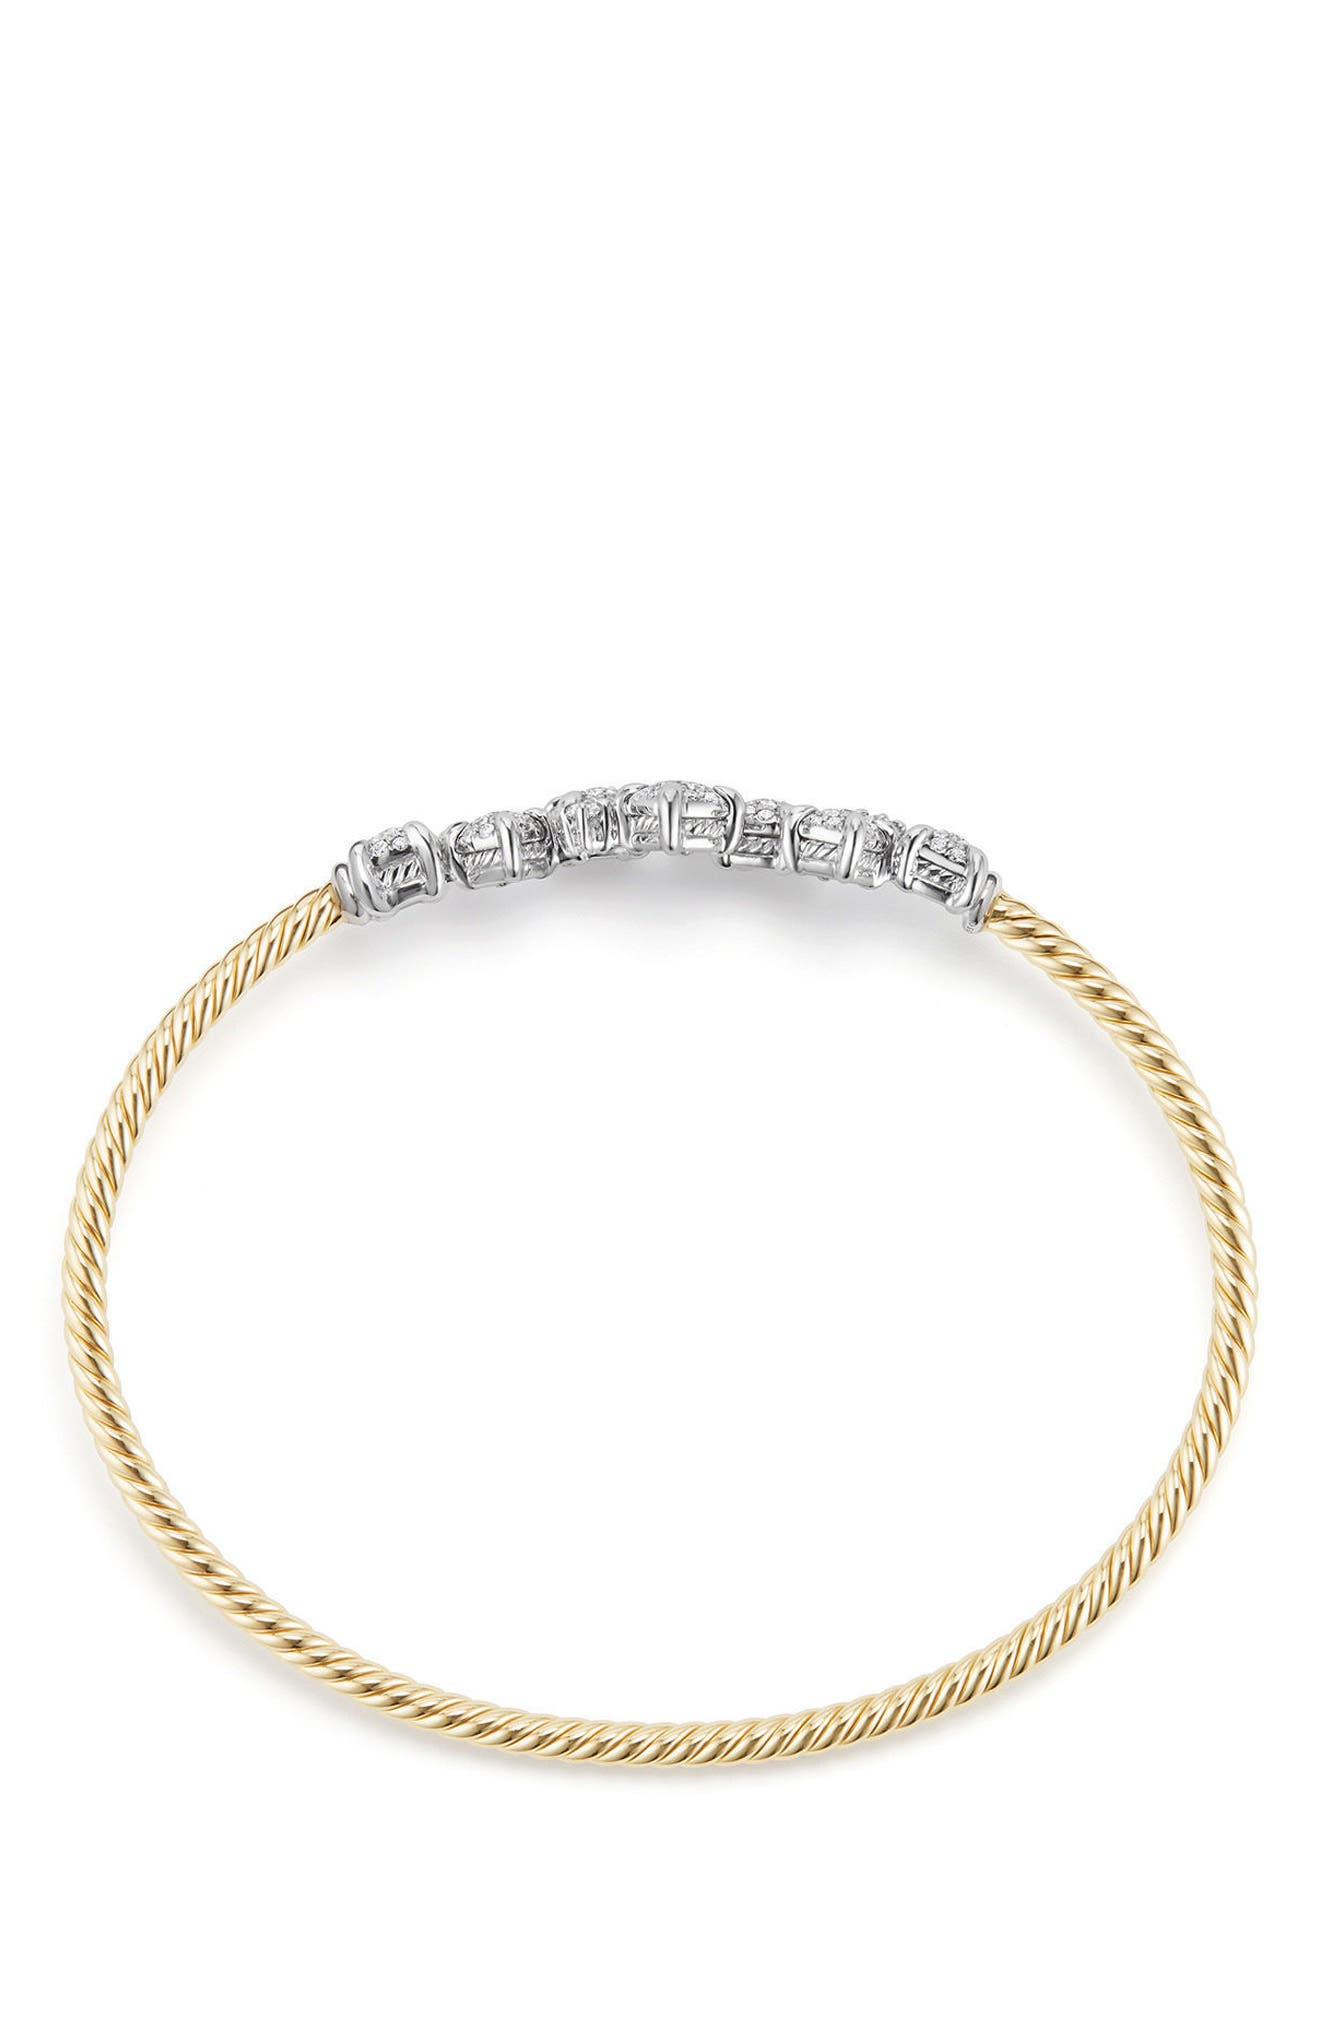 Precious Châtelaine Bracelet with Diamonds in 18K Gold,                             Alternate thumbnail 2, color,                             Yellow Gold/ Diamond